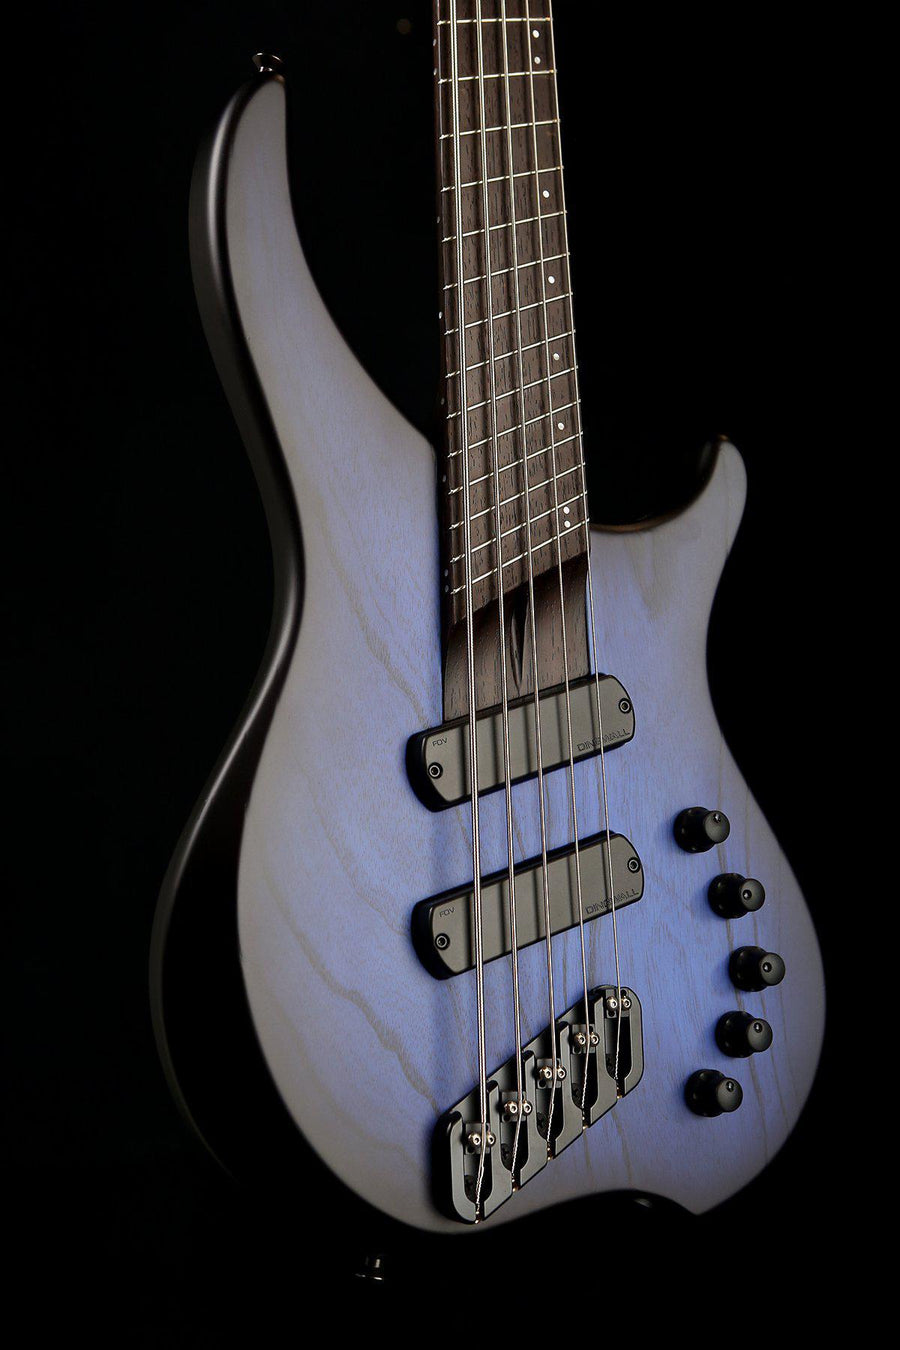 Bass Guitars - Dingwall ABZ5 Wenge Midnight Burst